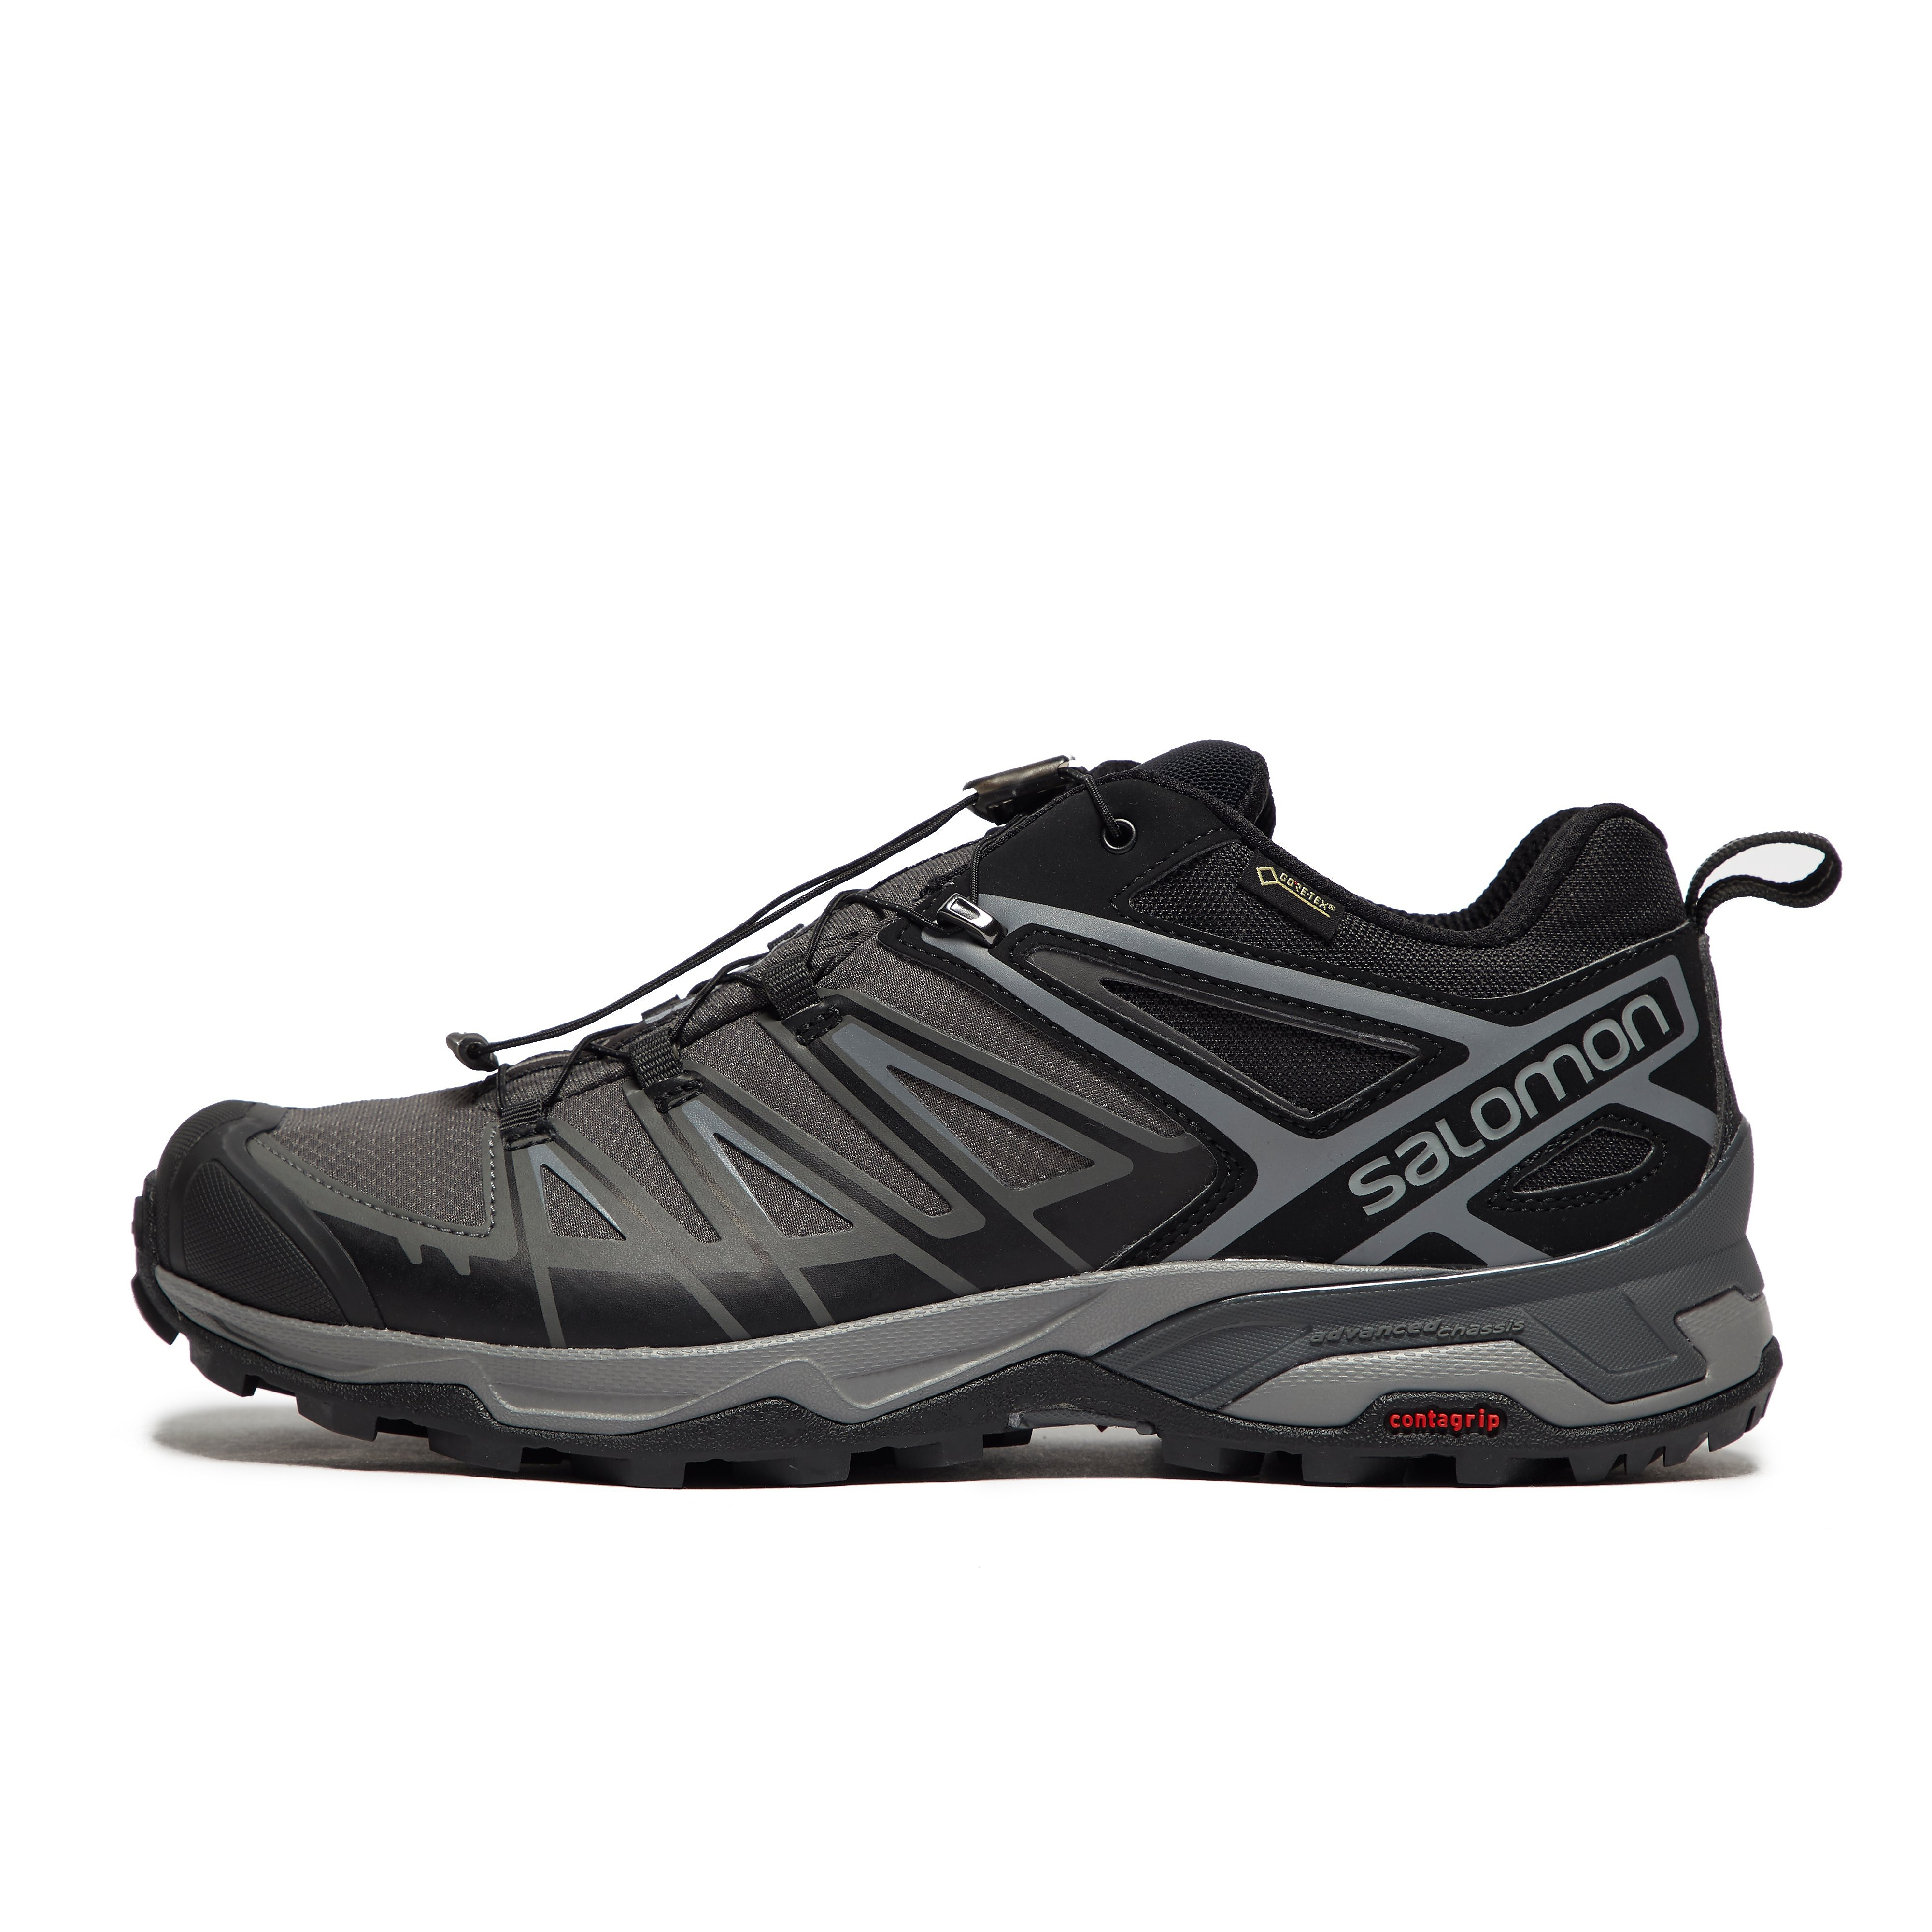 Salomon X ULTRA 3 GTX Men's Walking Shoes